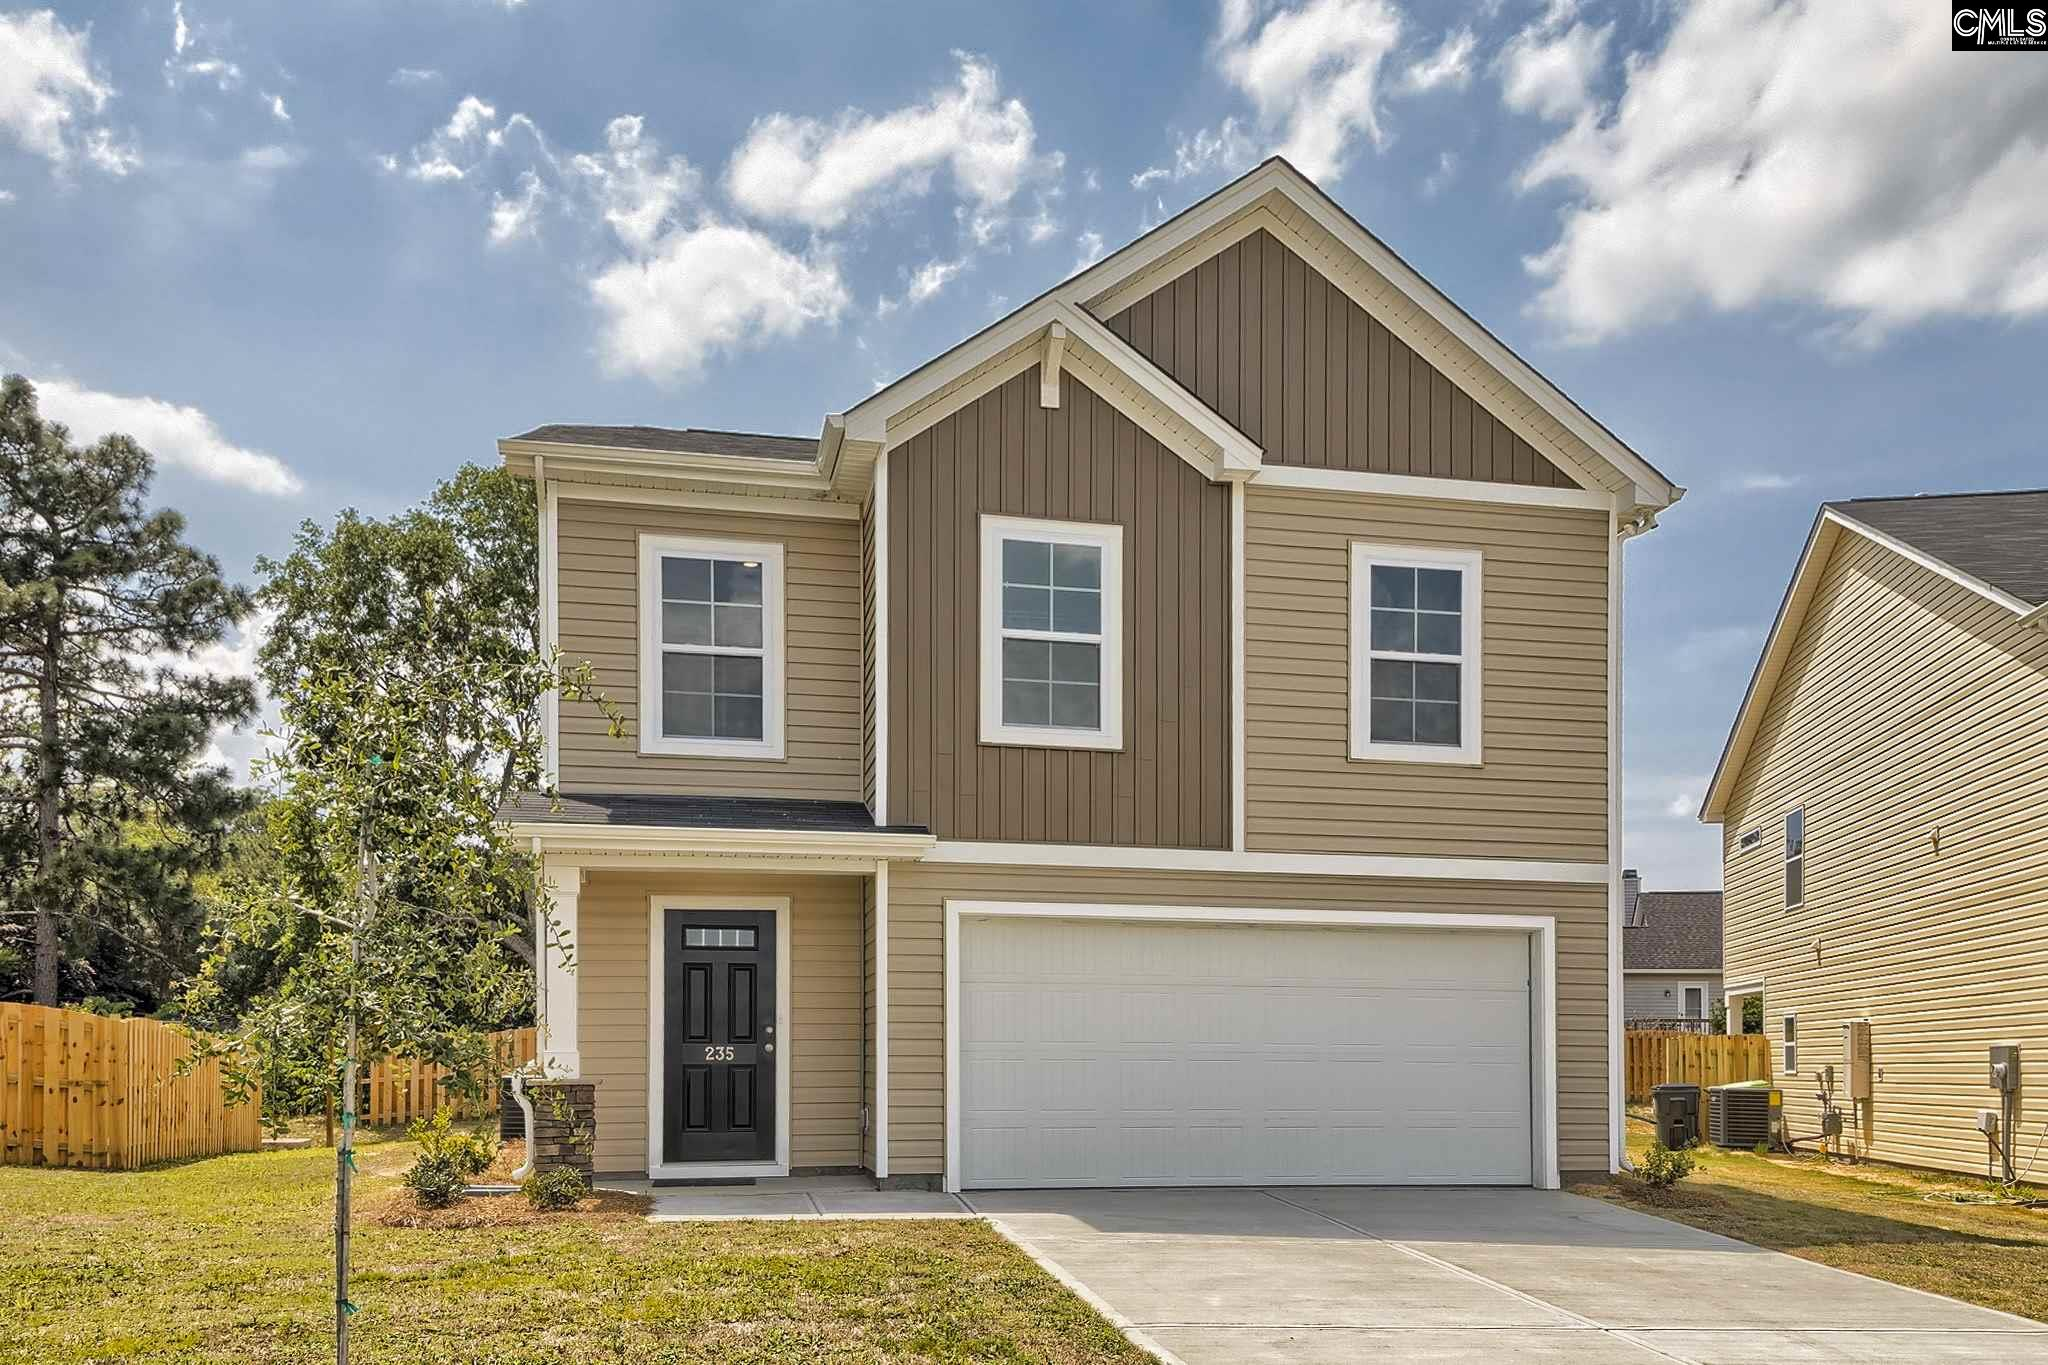 321 Liliana Columbia, SC 29223